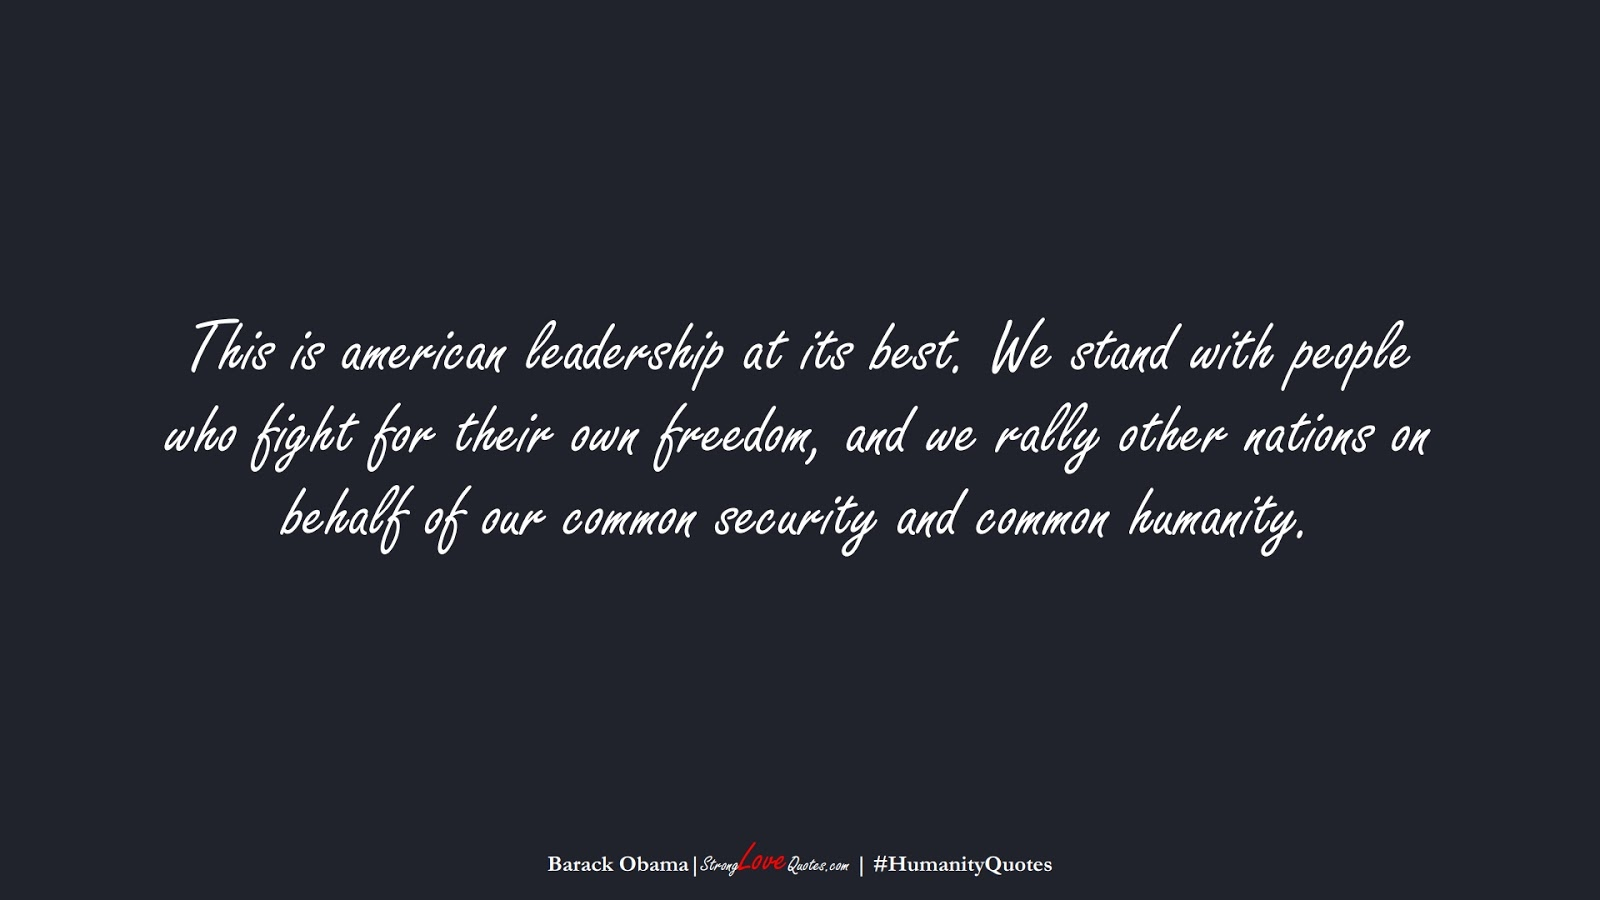 This is american leadership at its best. We stand with people who fight for their own freedom, and we rally other nations on behalf of our common security and common humanity. (Barack Obama);  #HumanityQuotes